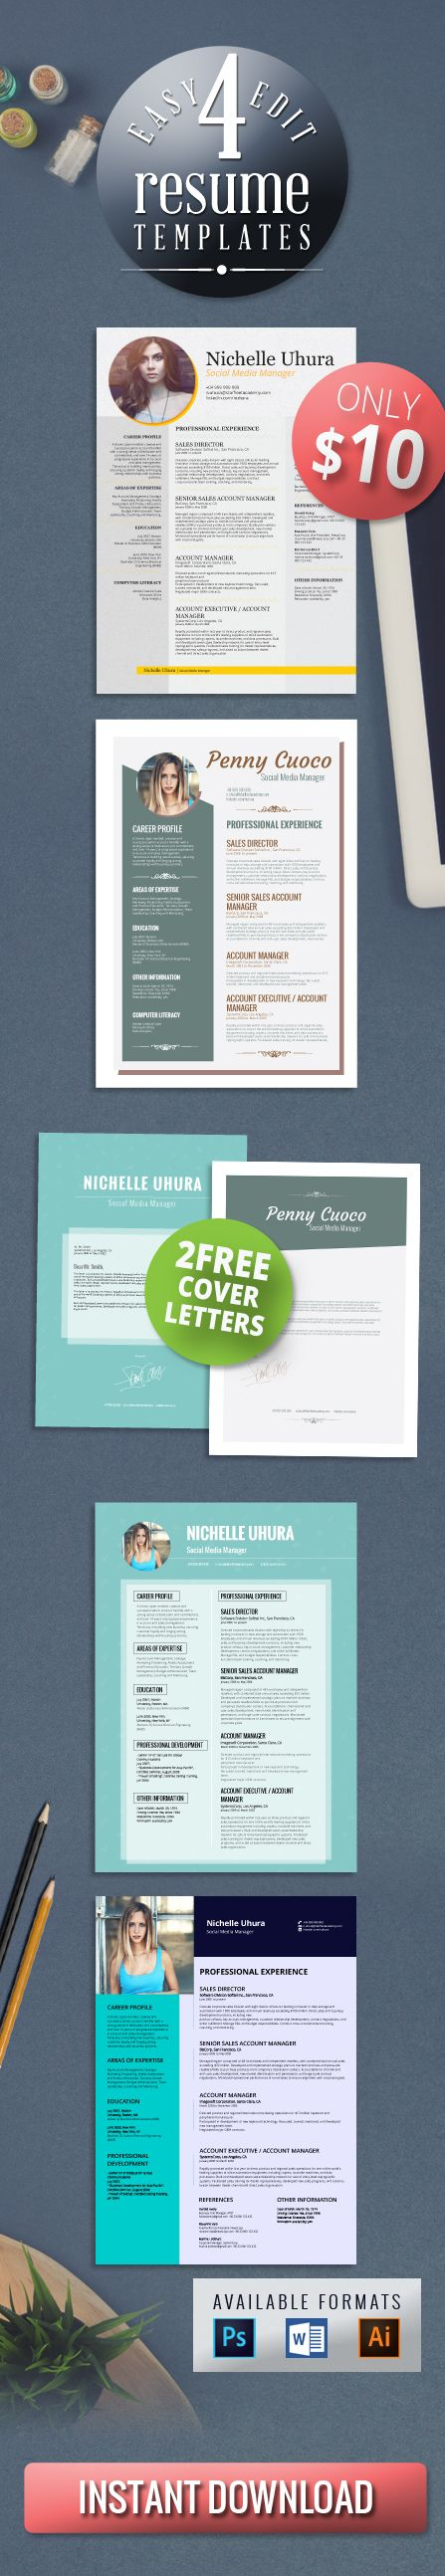 best ideas about resume maker resume 4 resume templates bundle 2 cover letter templates professional design creative